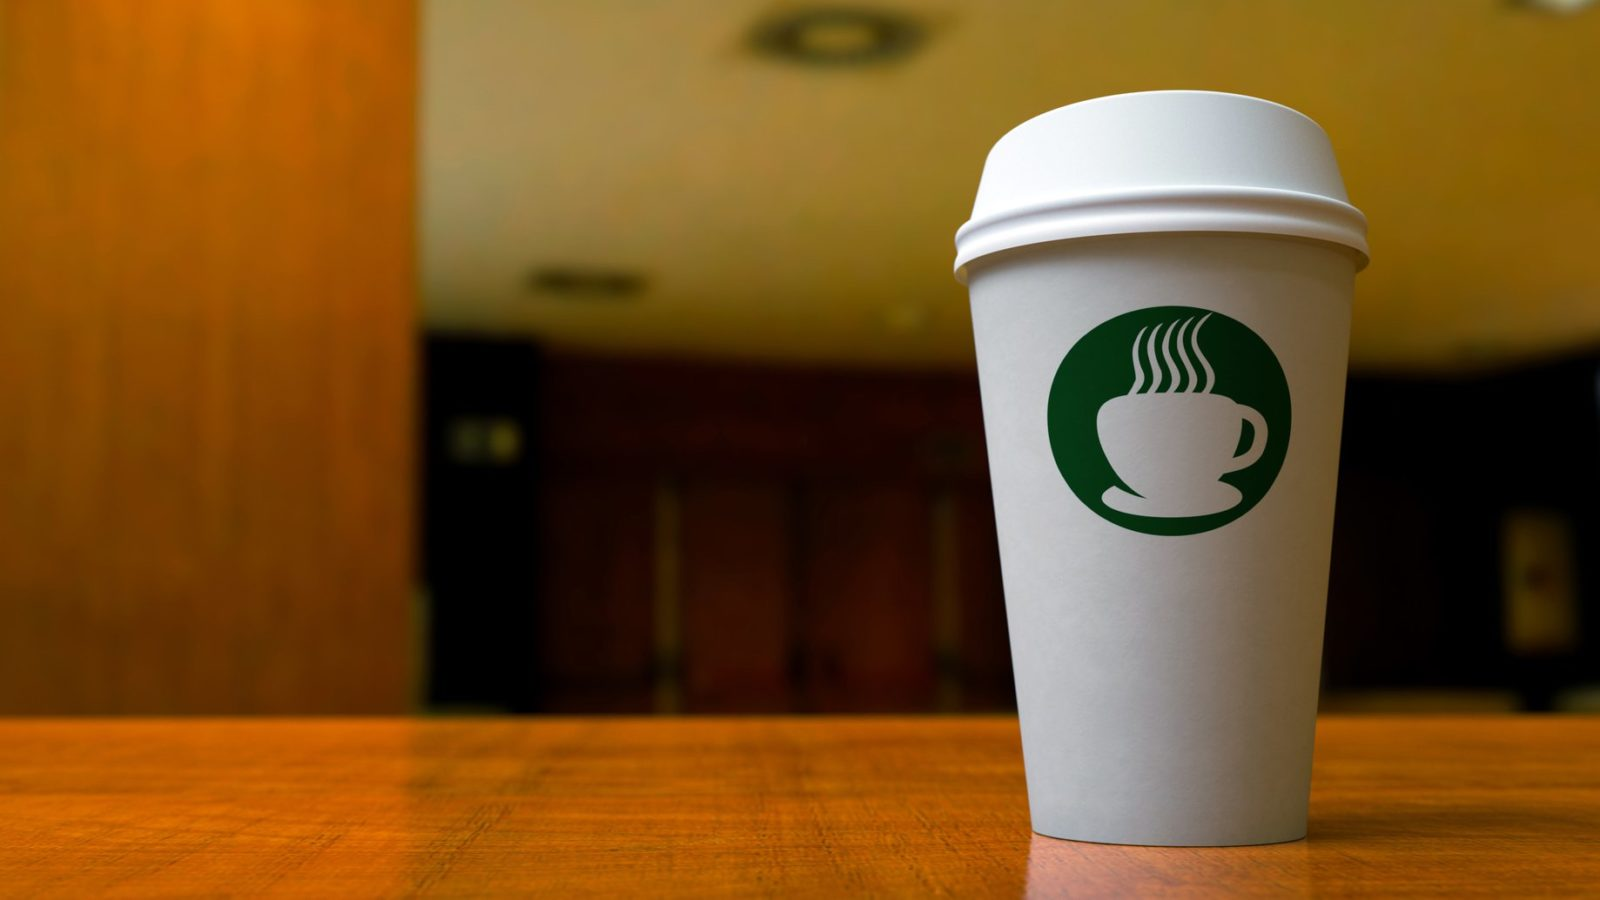 Business Service Companies: Learn from Starbucks How to Treat Customers